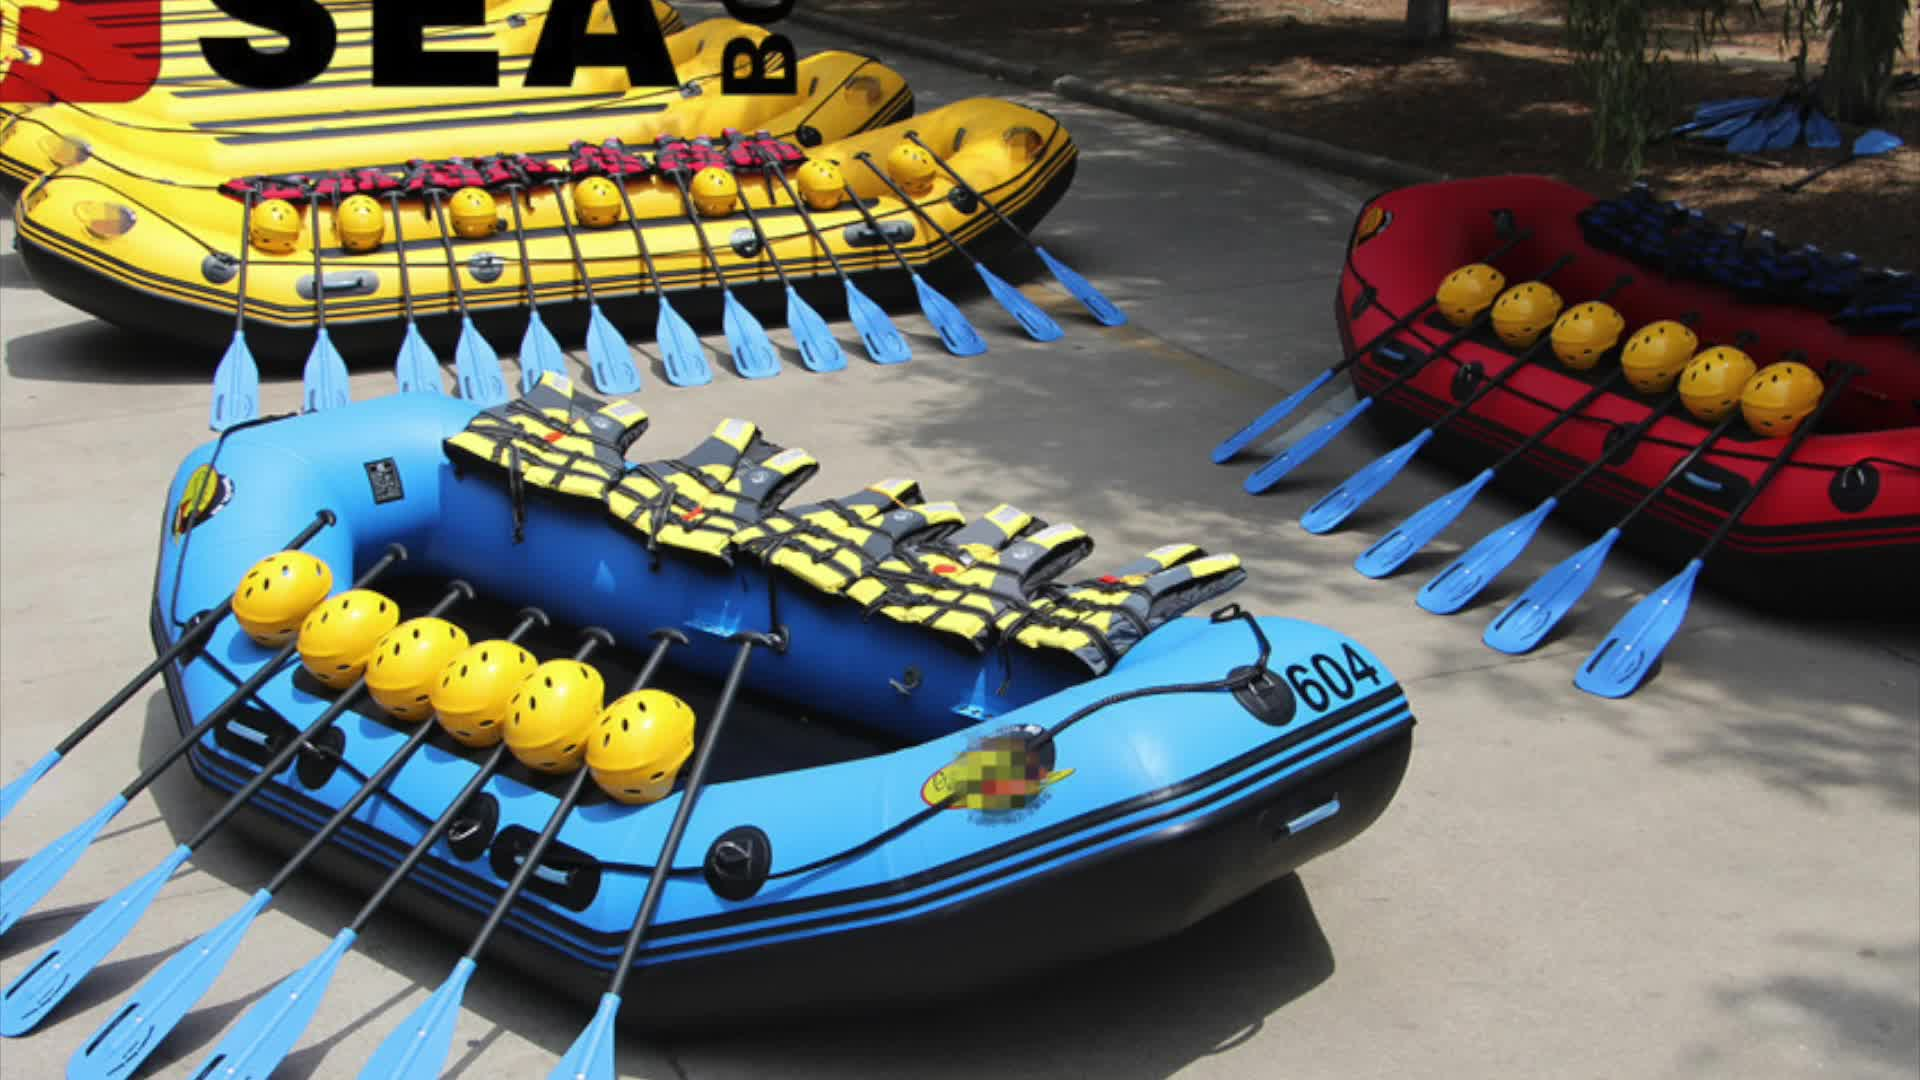 360 cm durable bottom 6 person inflatable whitewater raft rafting boat!